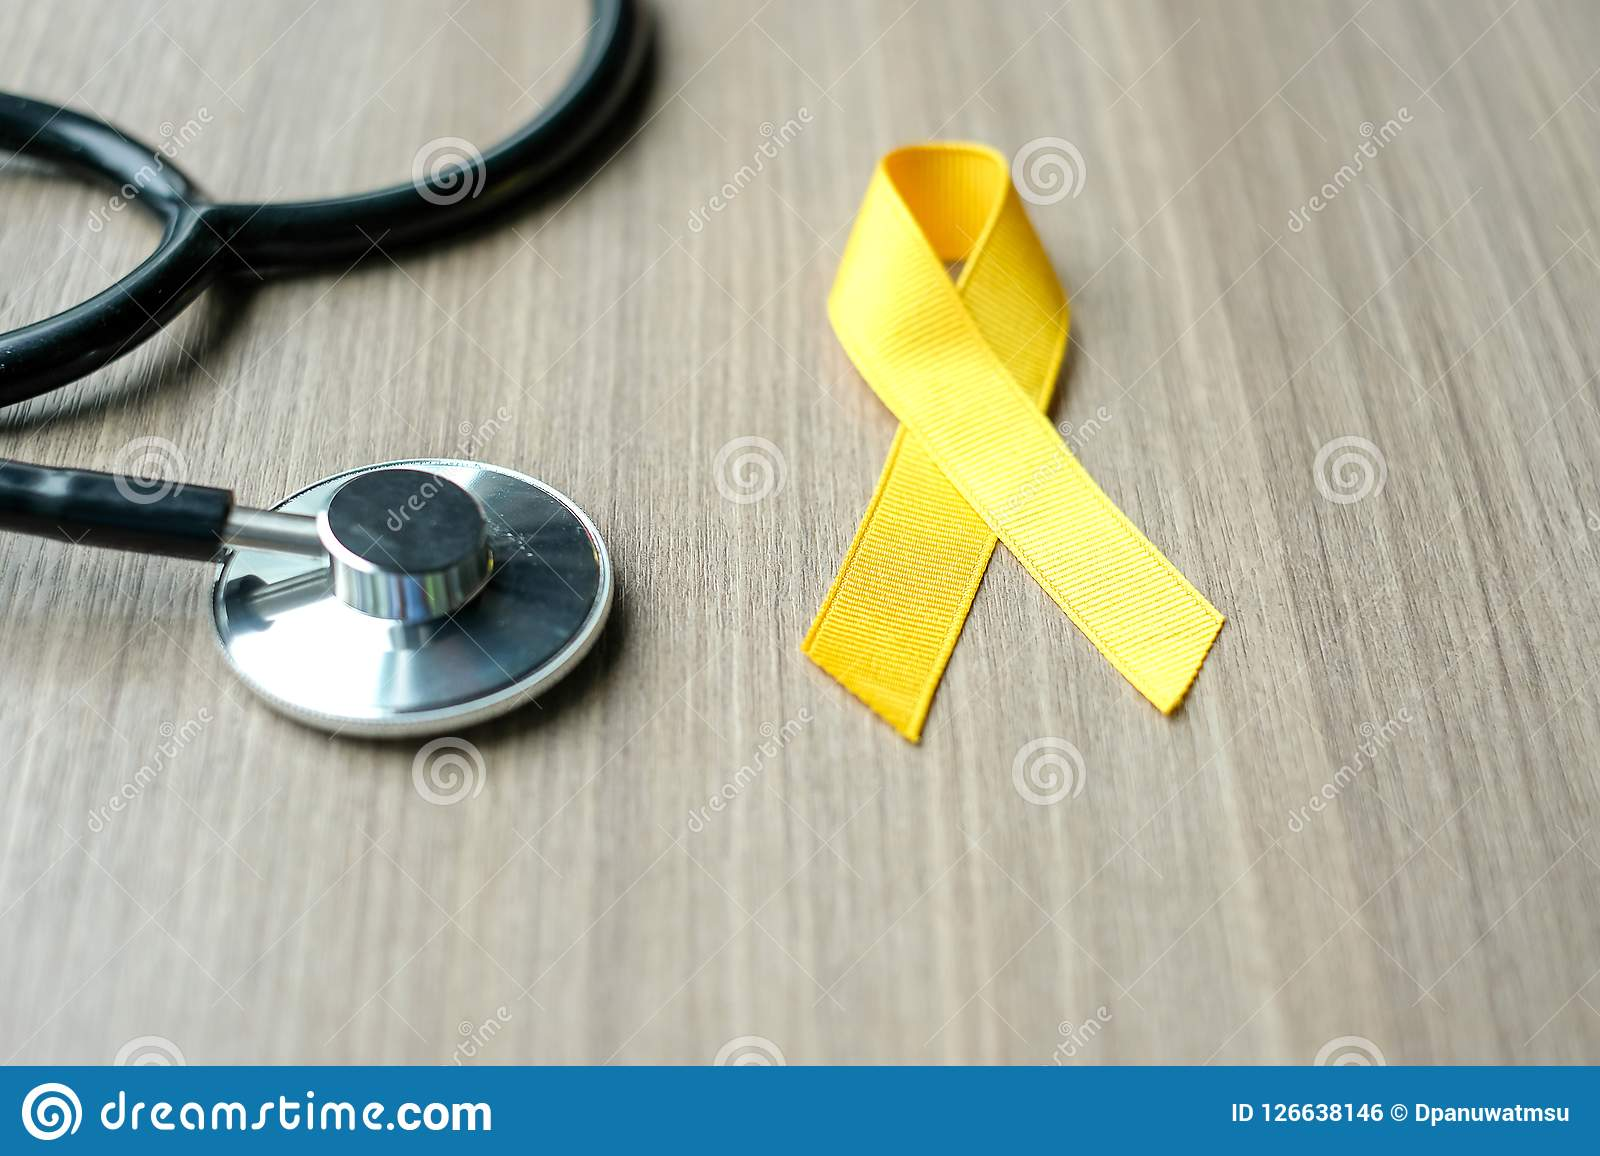 Childhood Cancer Awareness, Yellow Ribbon with stethoscope for supporting people living